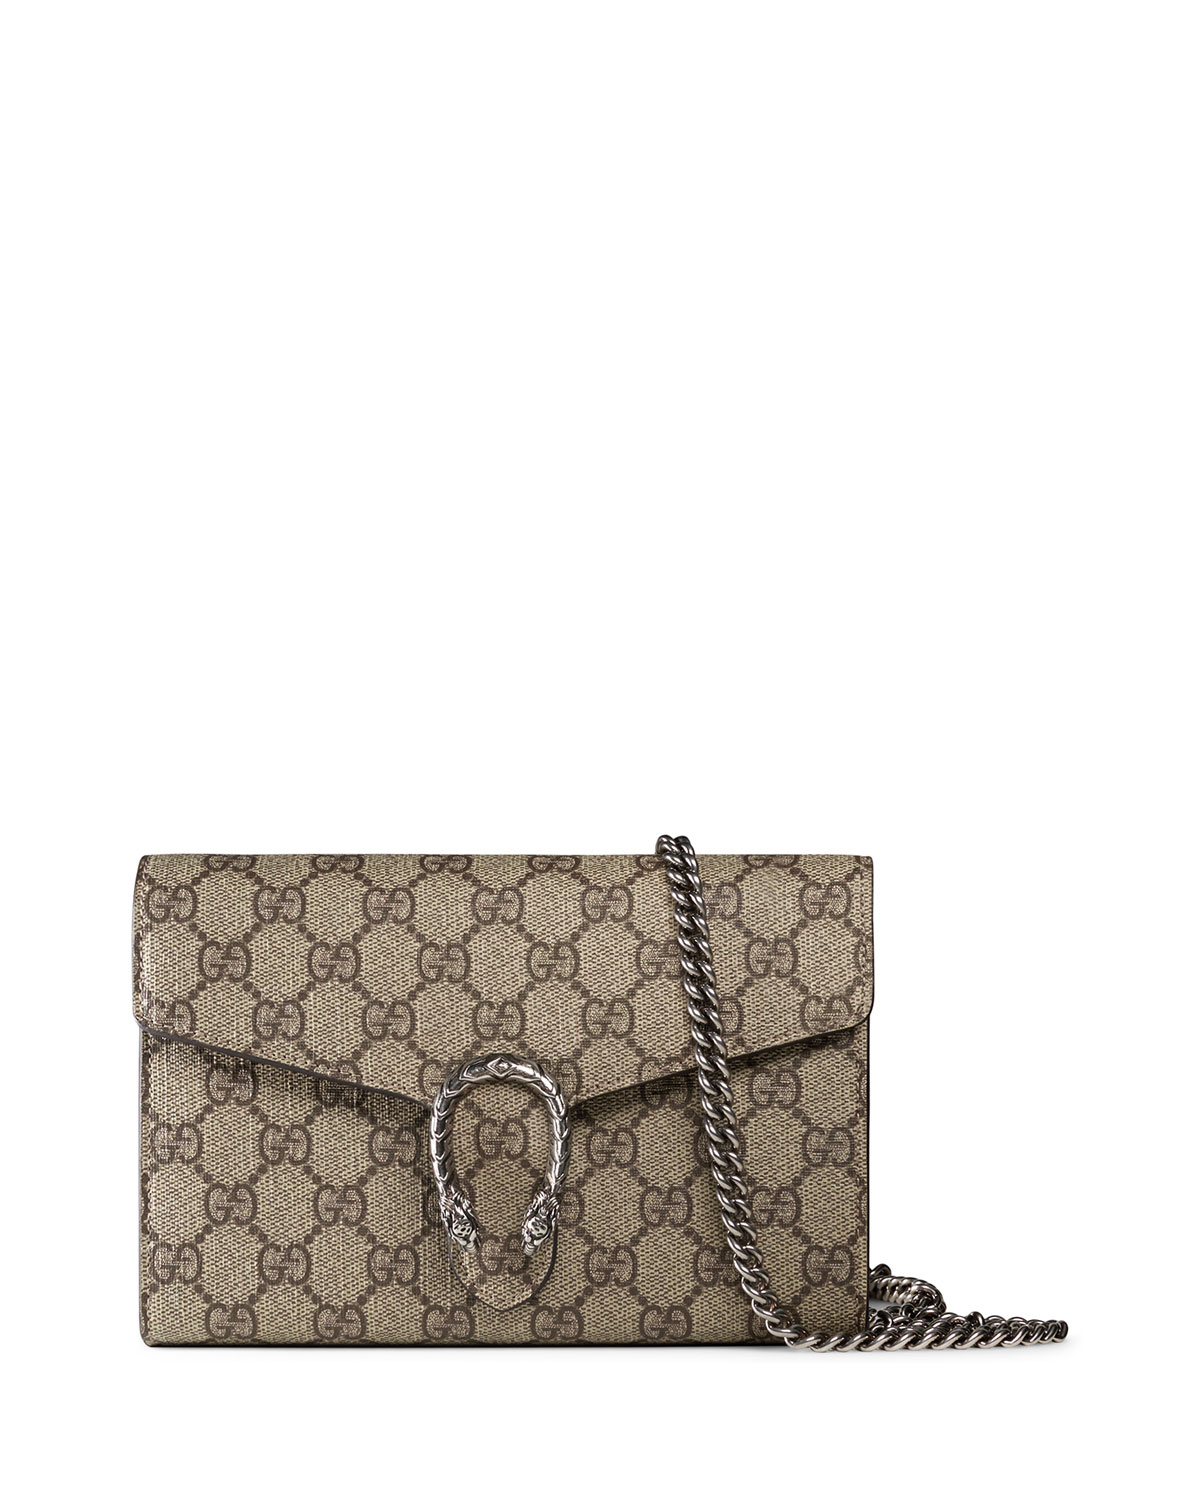 74091aa737a Gucci Dionysus GG Supreme Mini Chain Bag